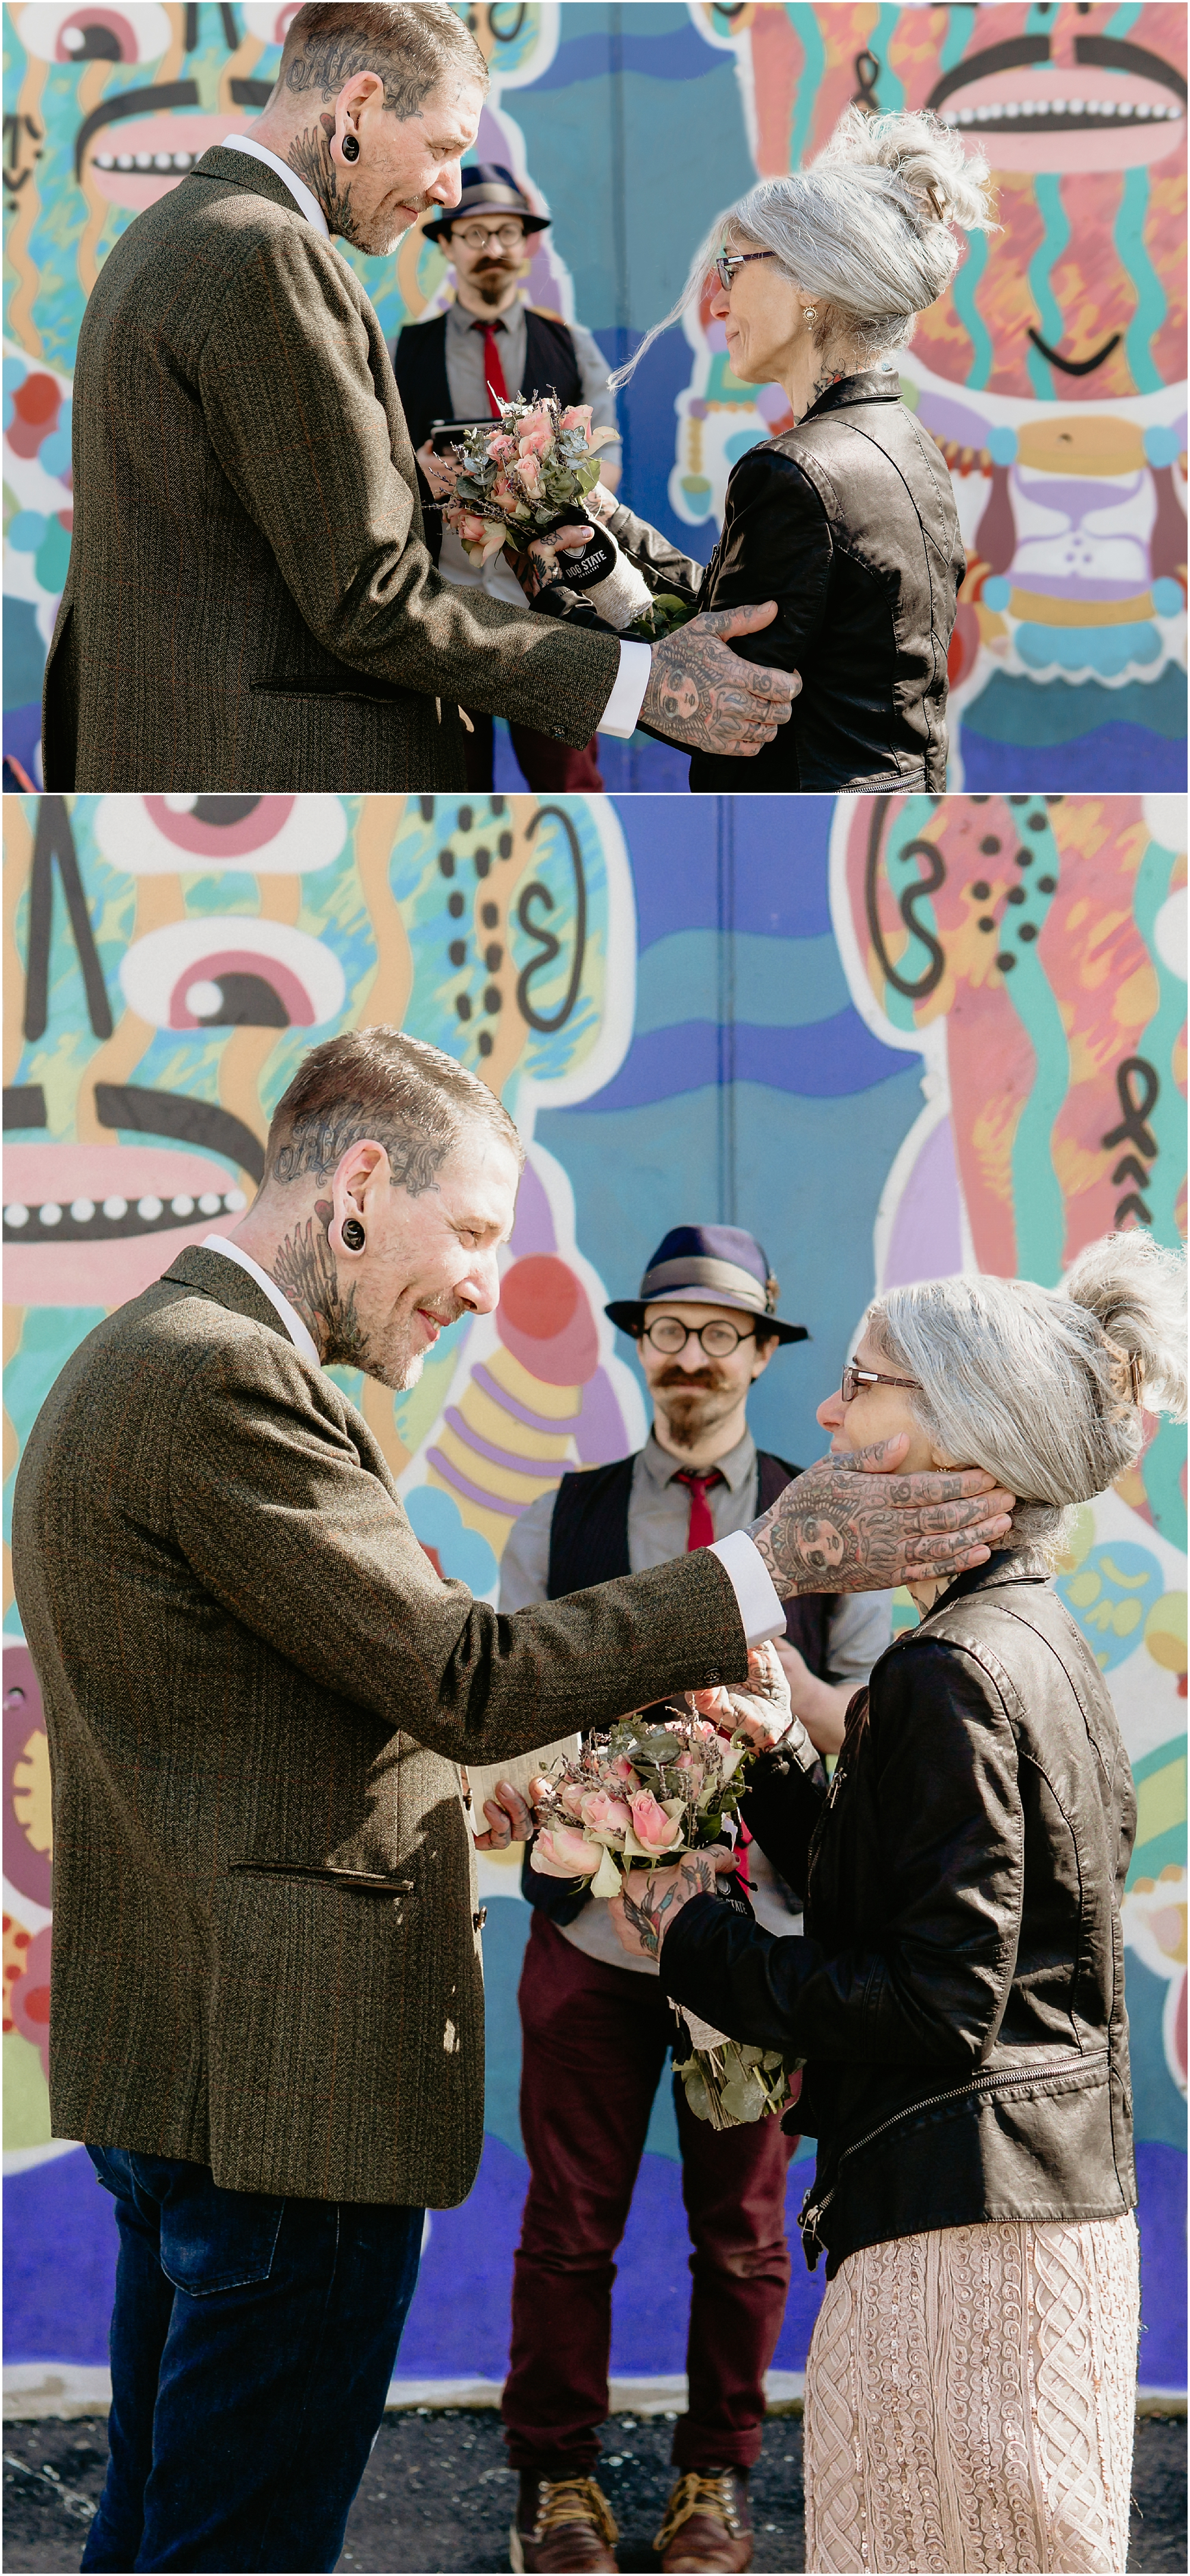 Lisa&Dan_Coney_Island_NYC_Elopement_Jeanette Joy Photography_April 2018_0036.jpg